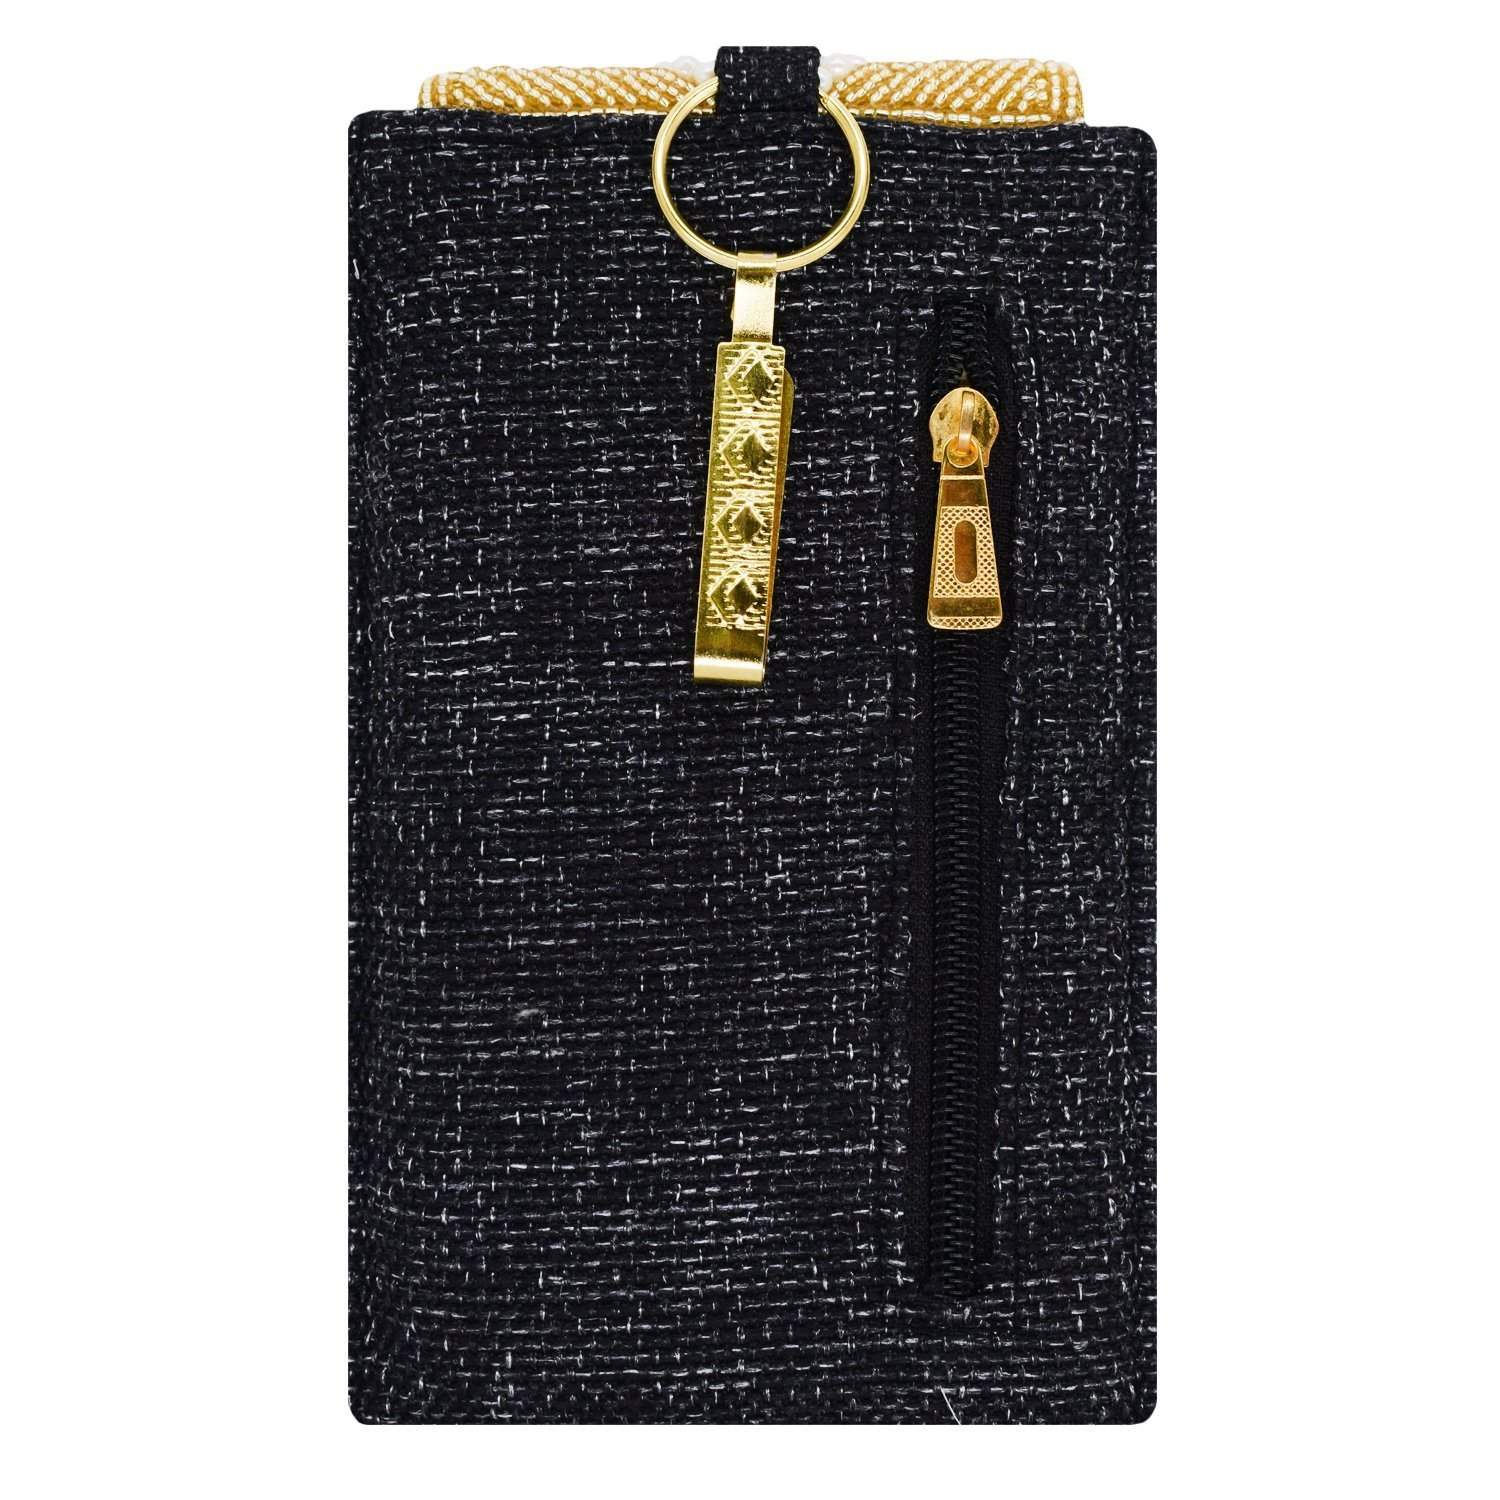 Ethnic Beads & Pearl Jute Mobile Pouch Waist Clip (Black) - Bagaholics Gift